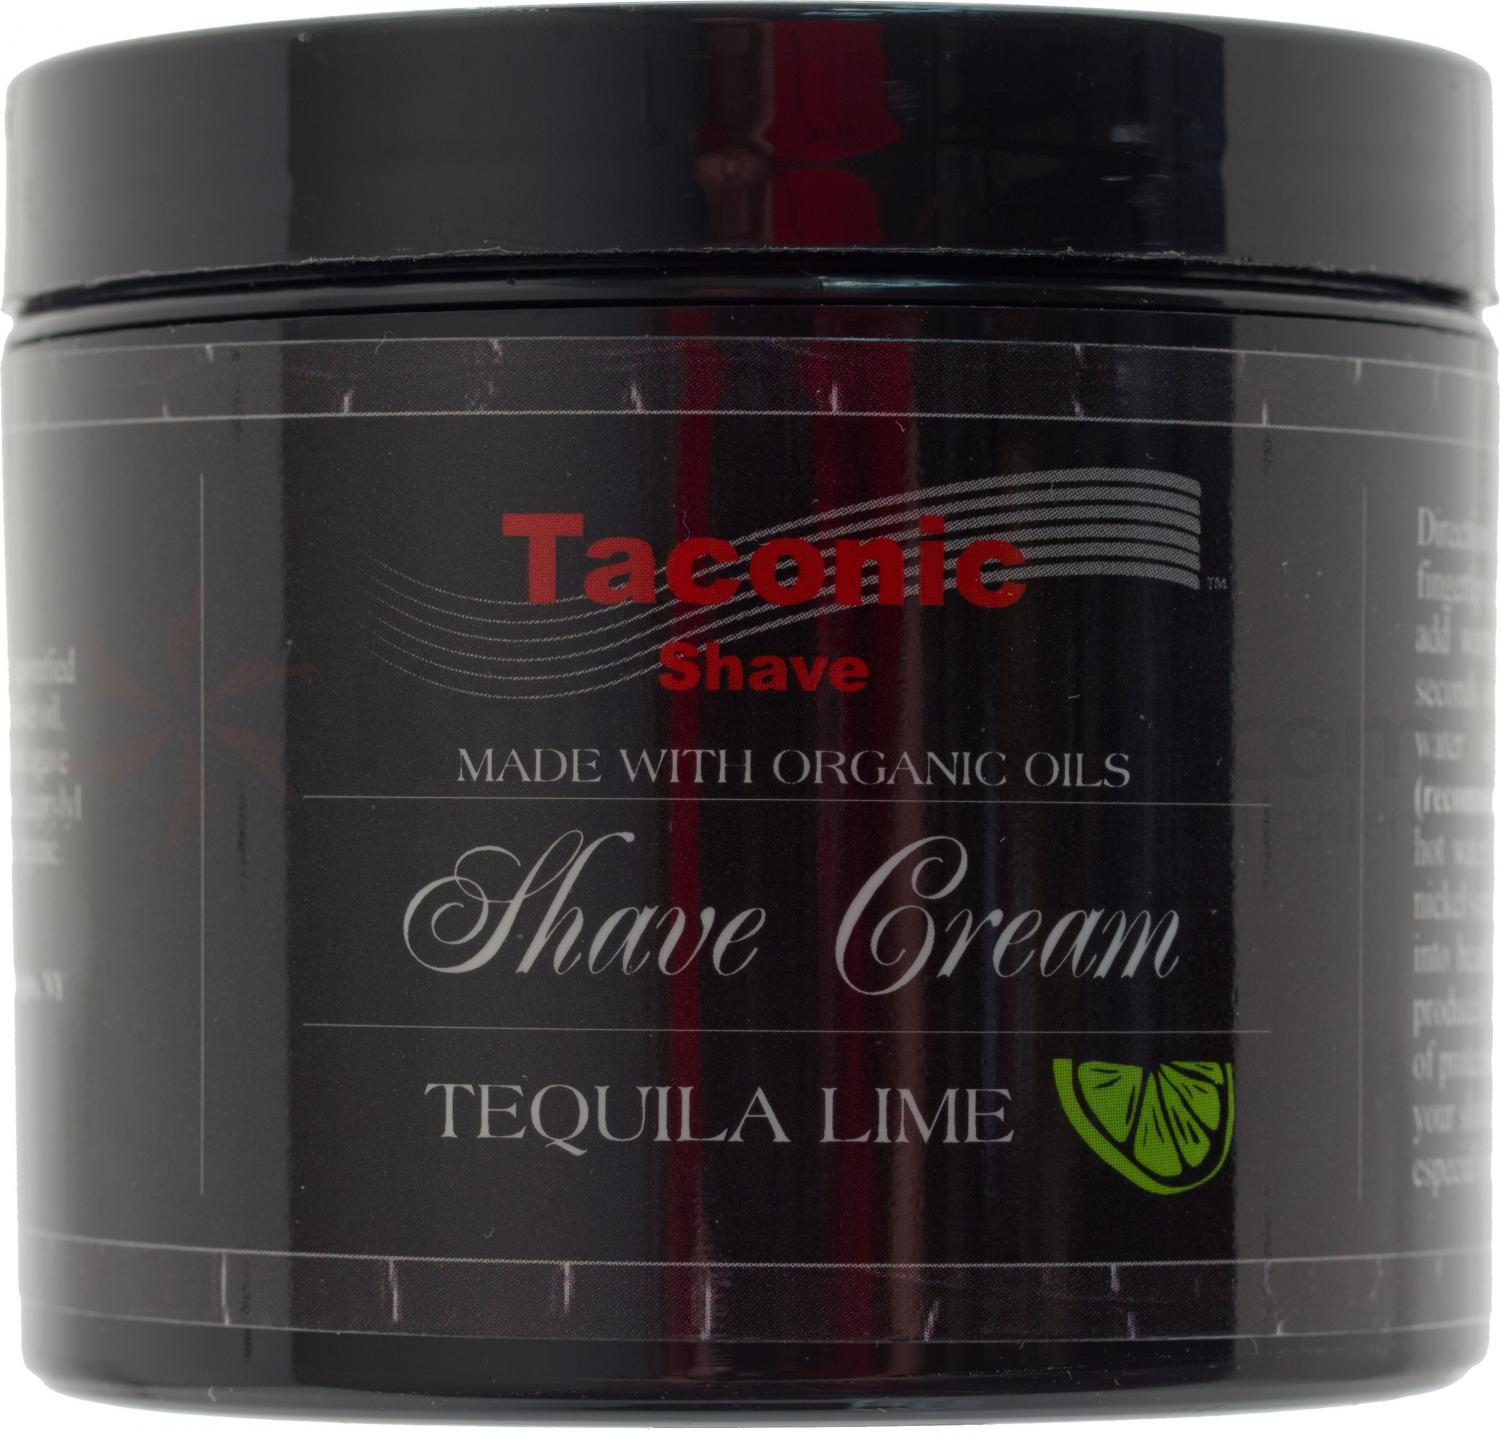 Taconic Tequila Lime Shave Cream, 4 oz. Tub